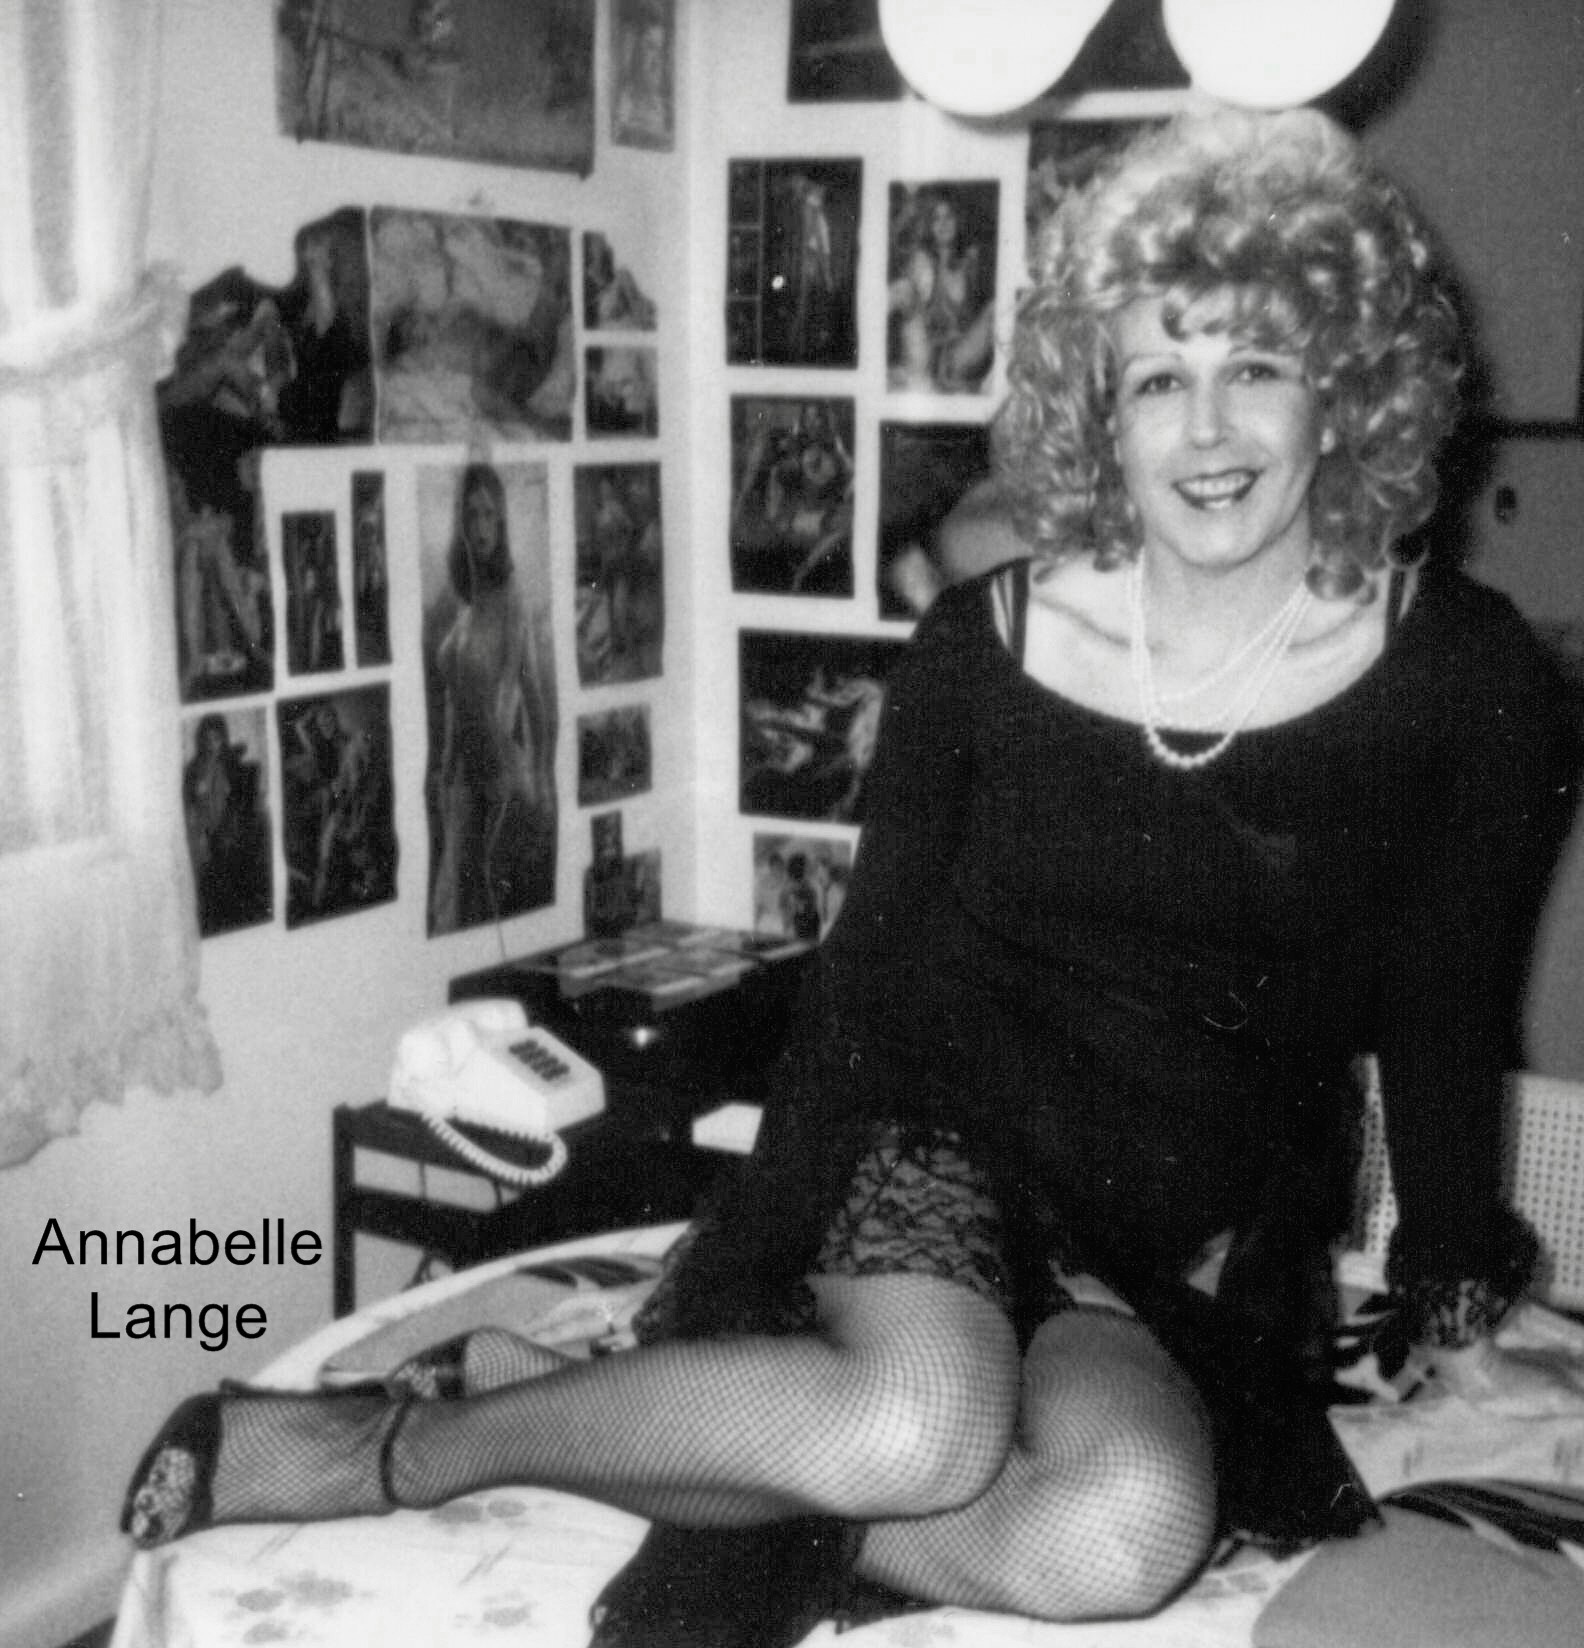 Annabelle de plus pres - 1 part 3